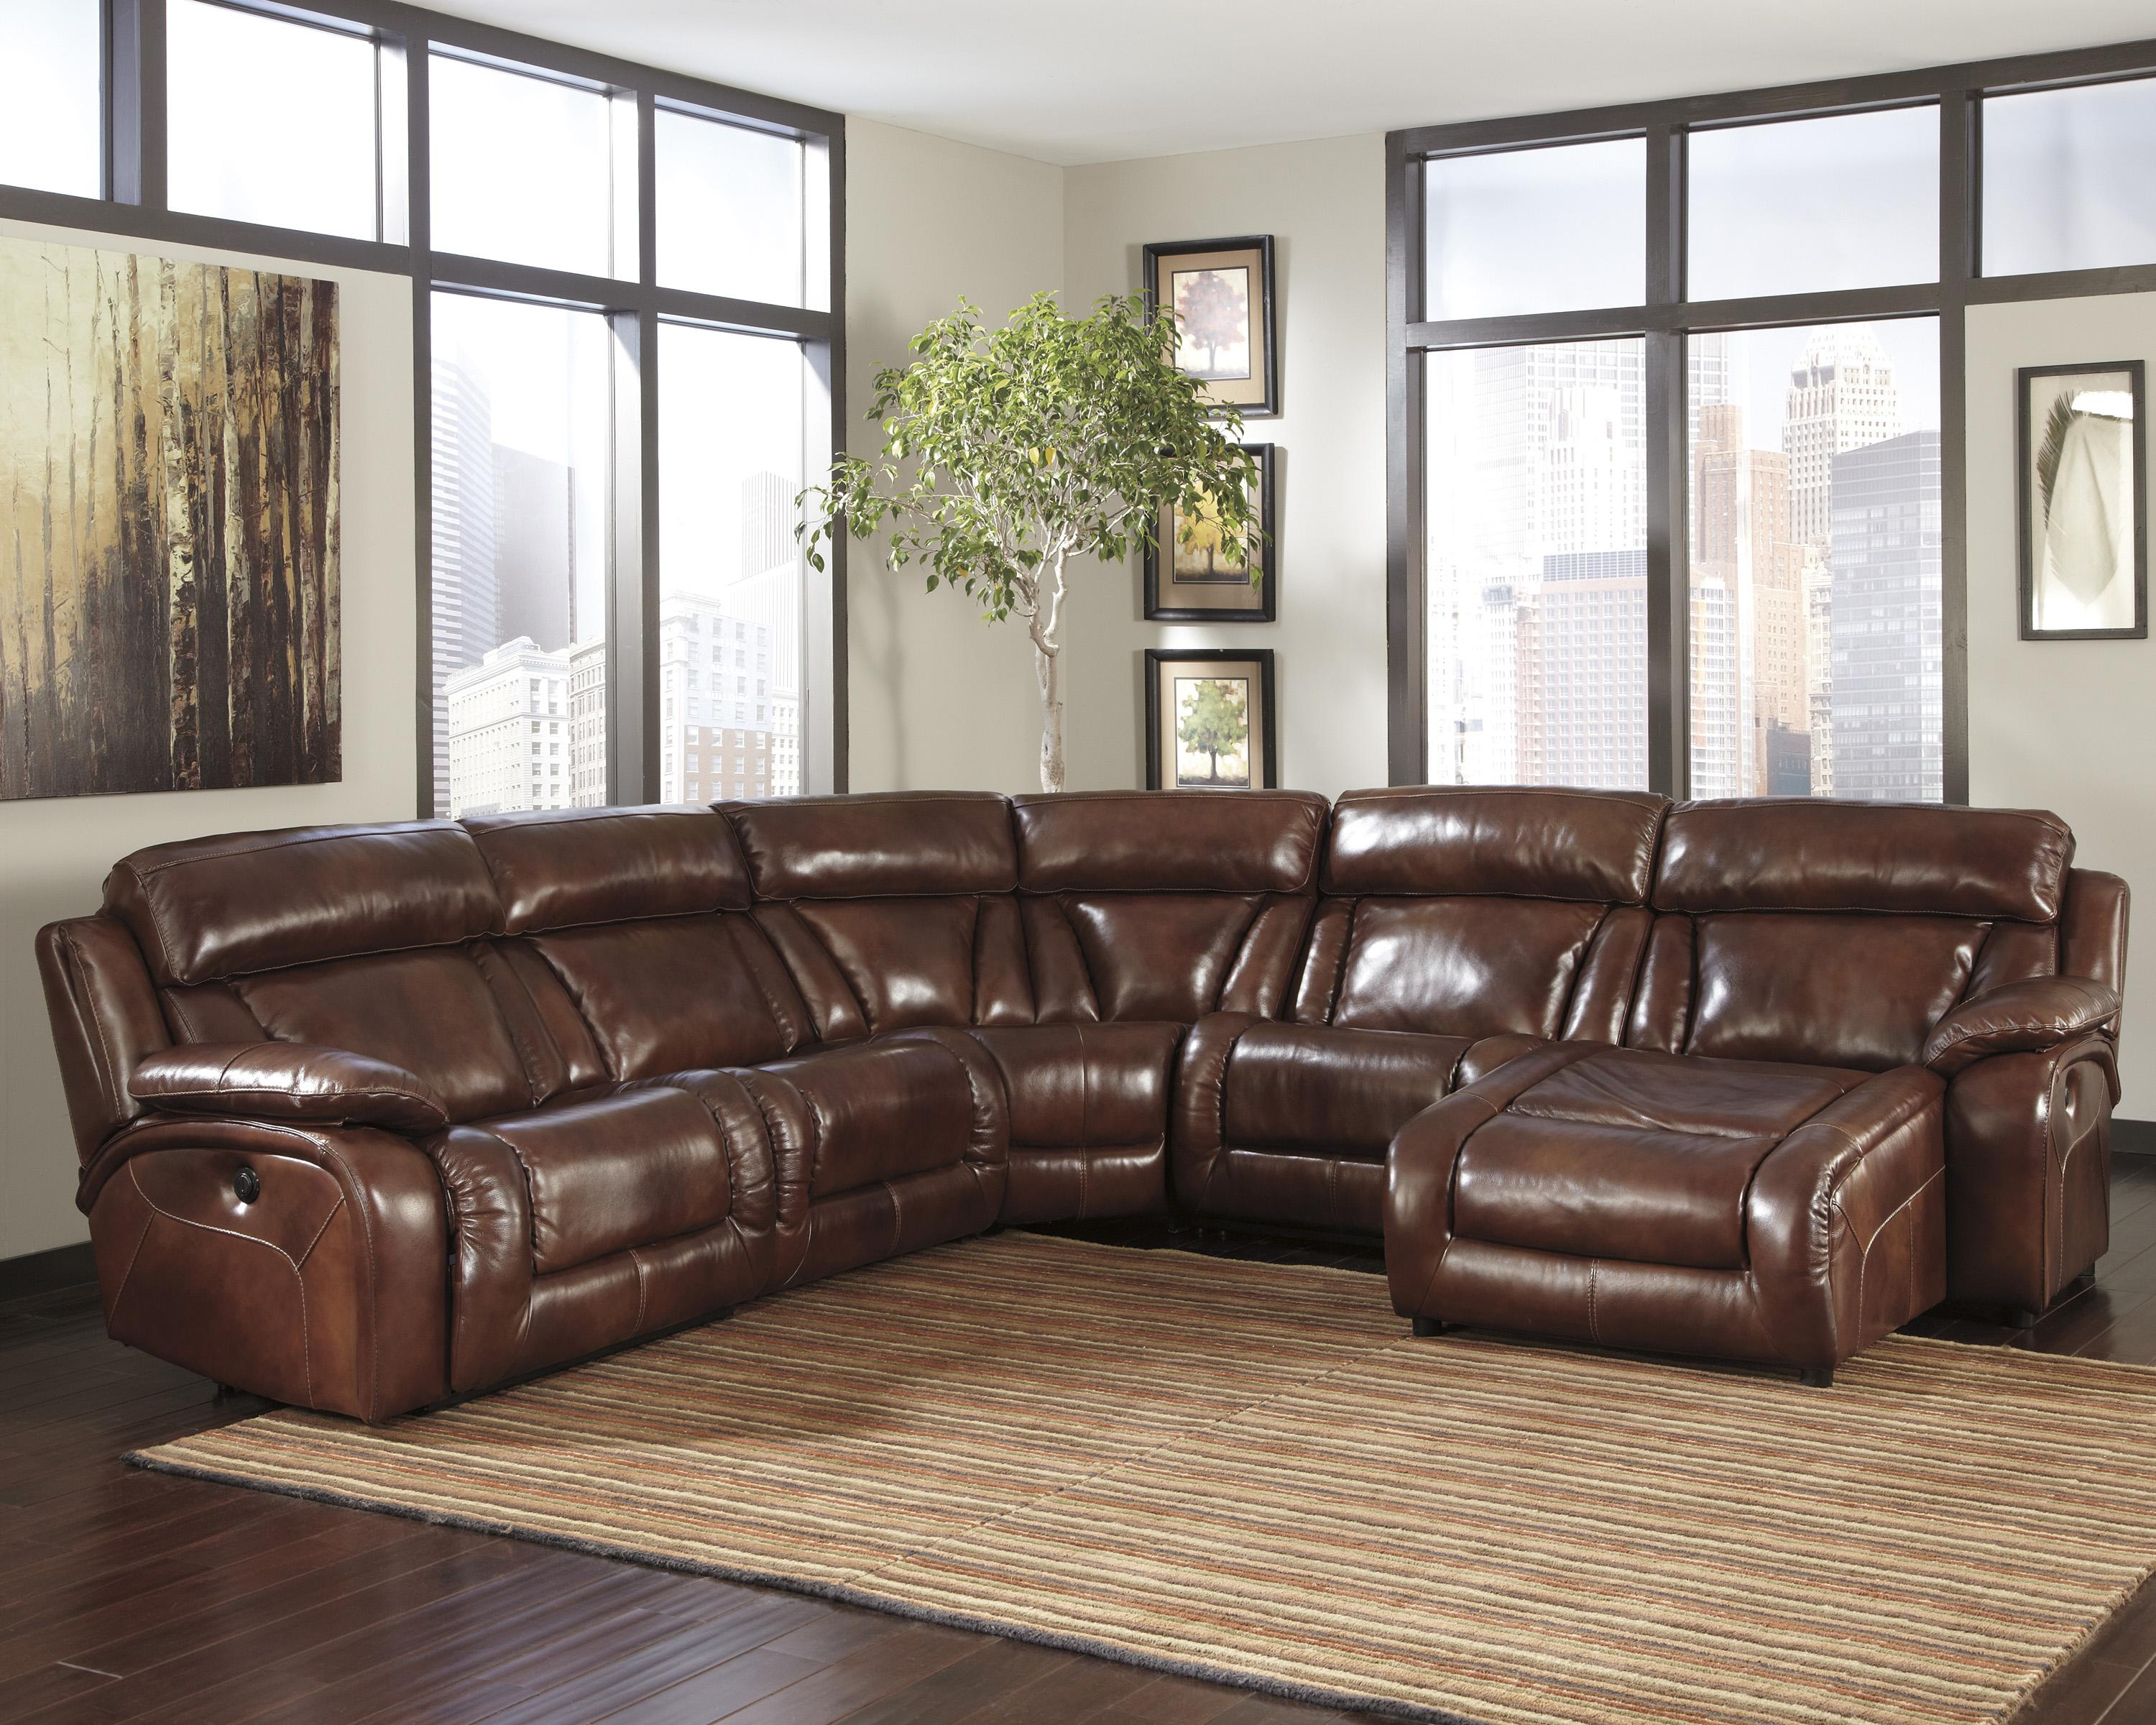 Signature Design by Ashley Elemen Contemporary Reclining Sectional Sofa - Item Number: U9920158+57+2x46+77+97